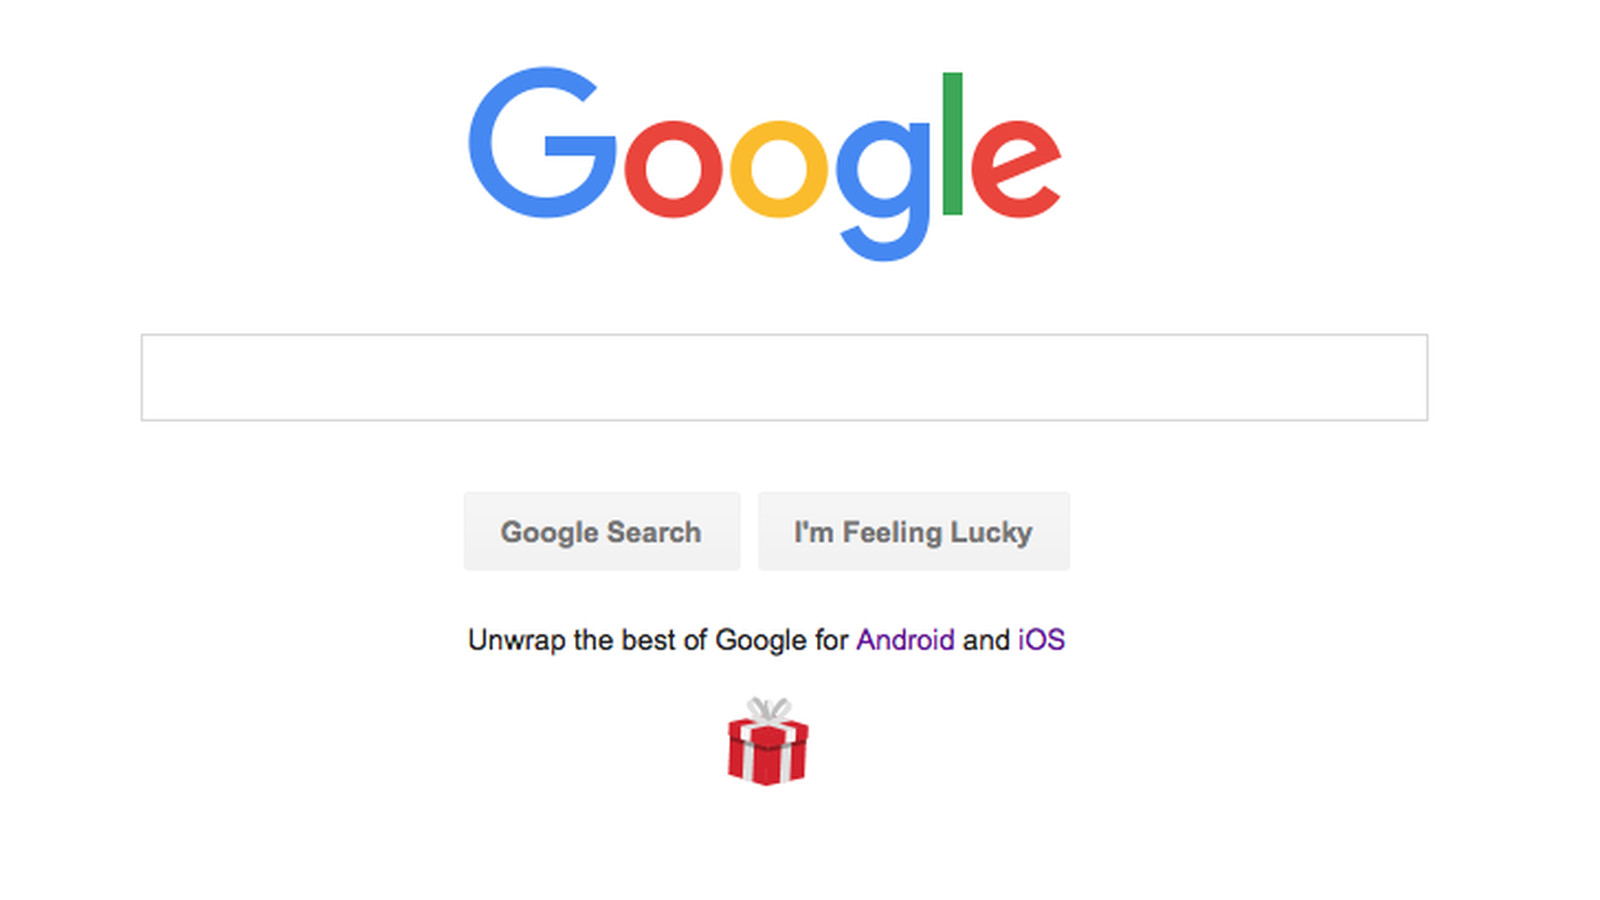 Google Uses Homepage to Pitch New Android and iPhone